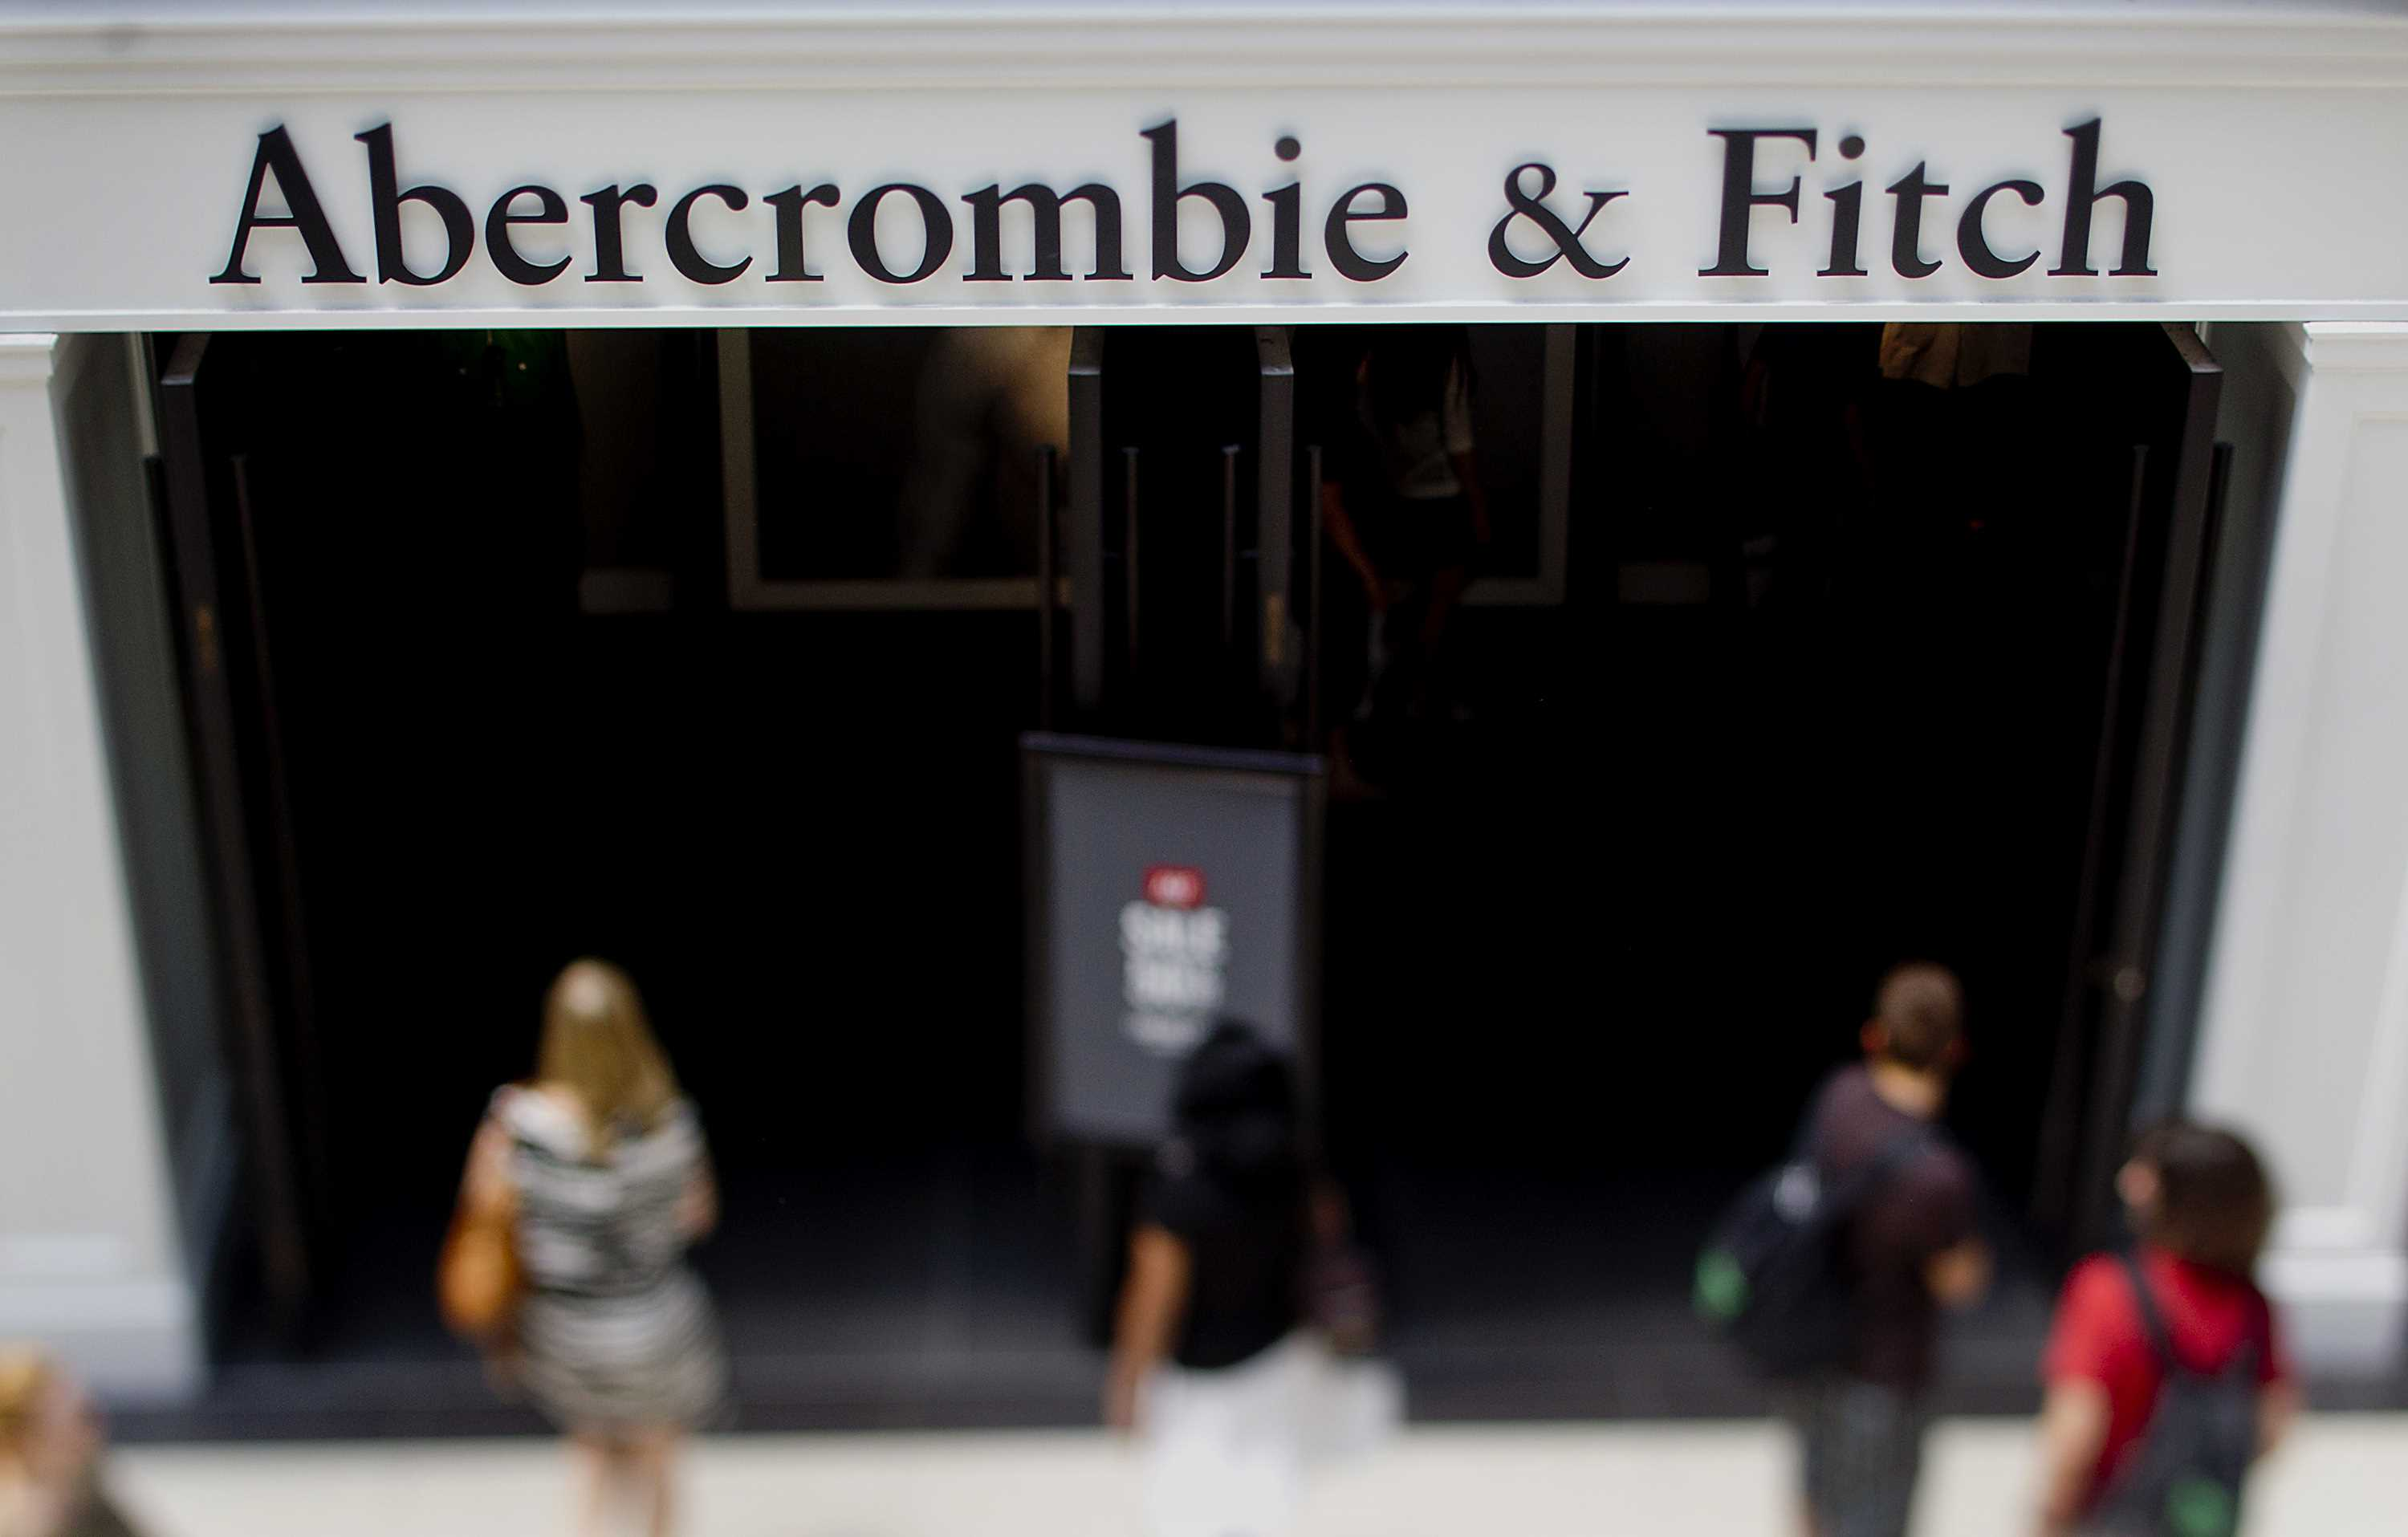 Abercrombie & Fitch settles EEOC lawsuits over Muslim headscarf policy